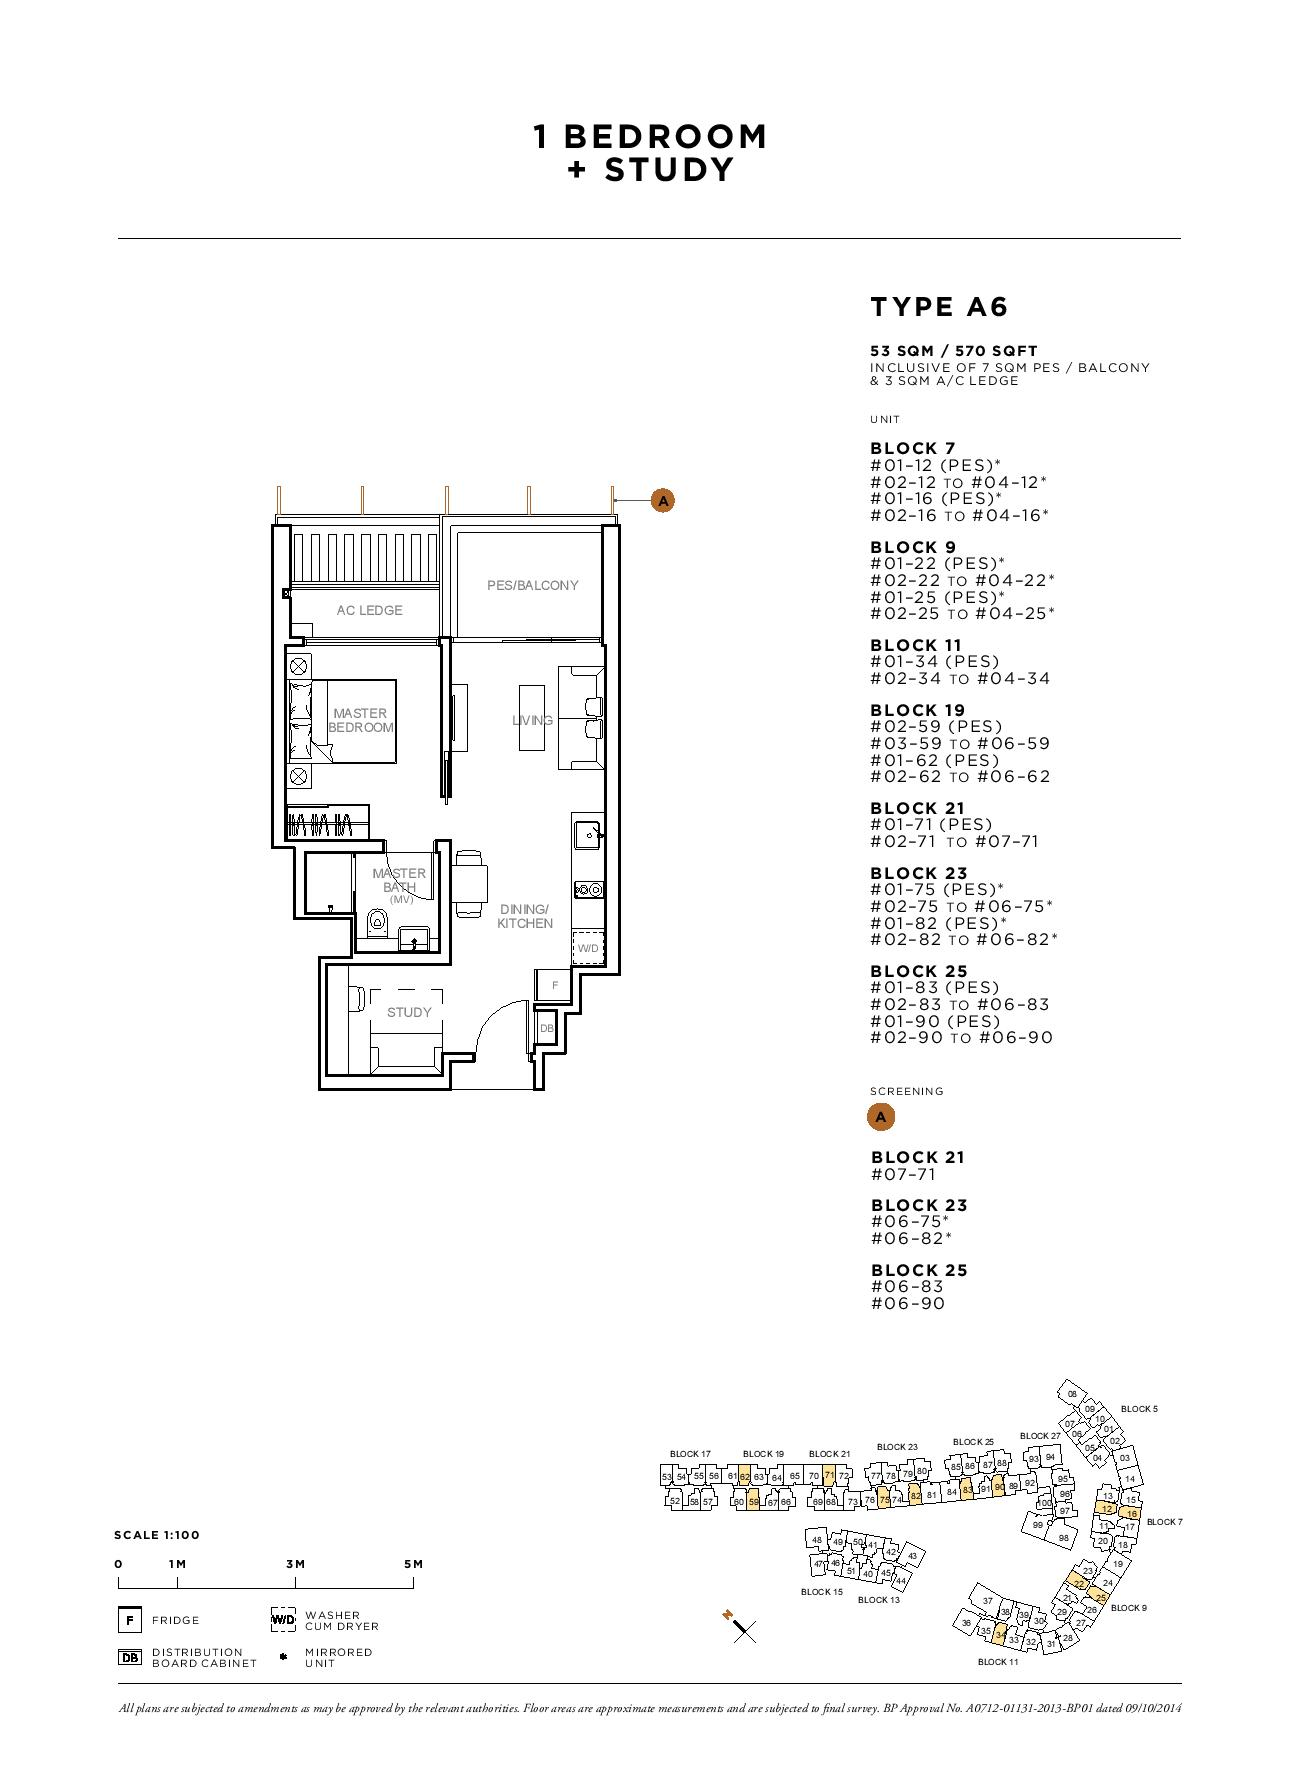 Sophia Hills 1 Bedroom + Study Type A6 Floor Plans